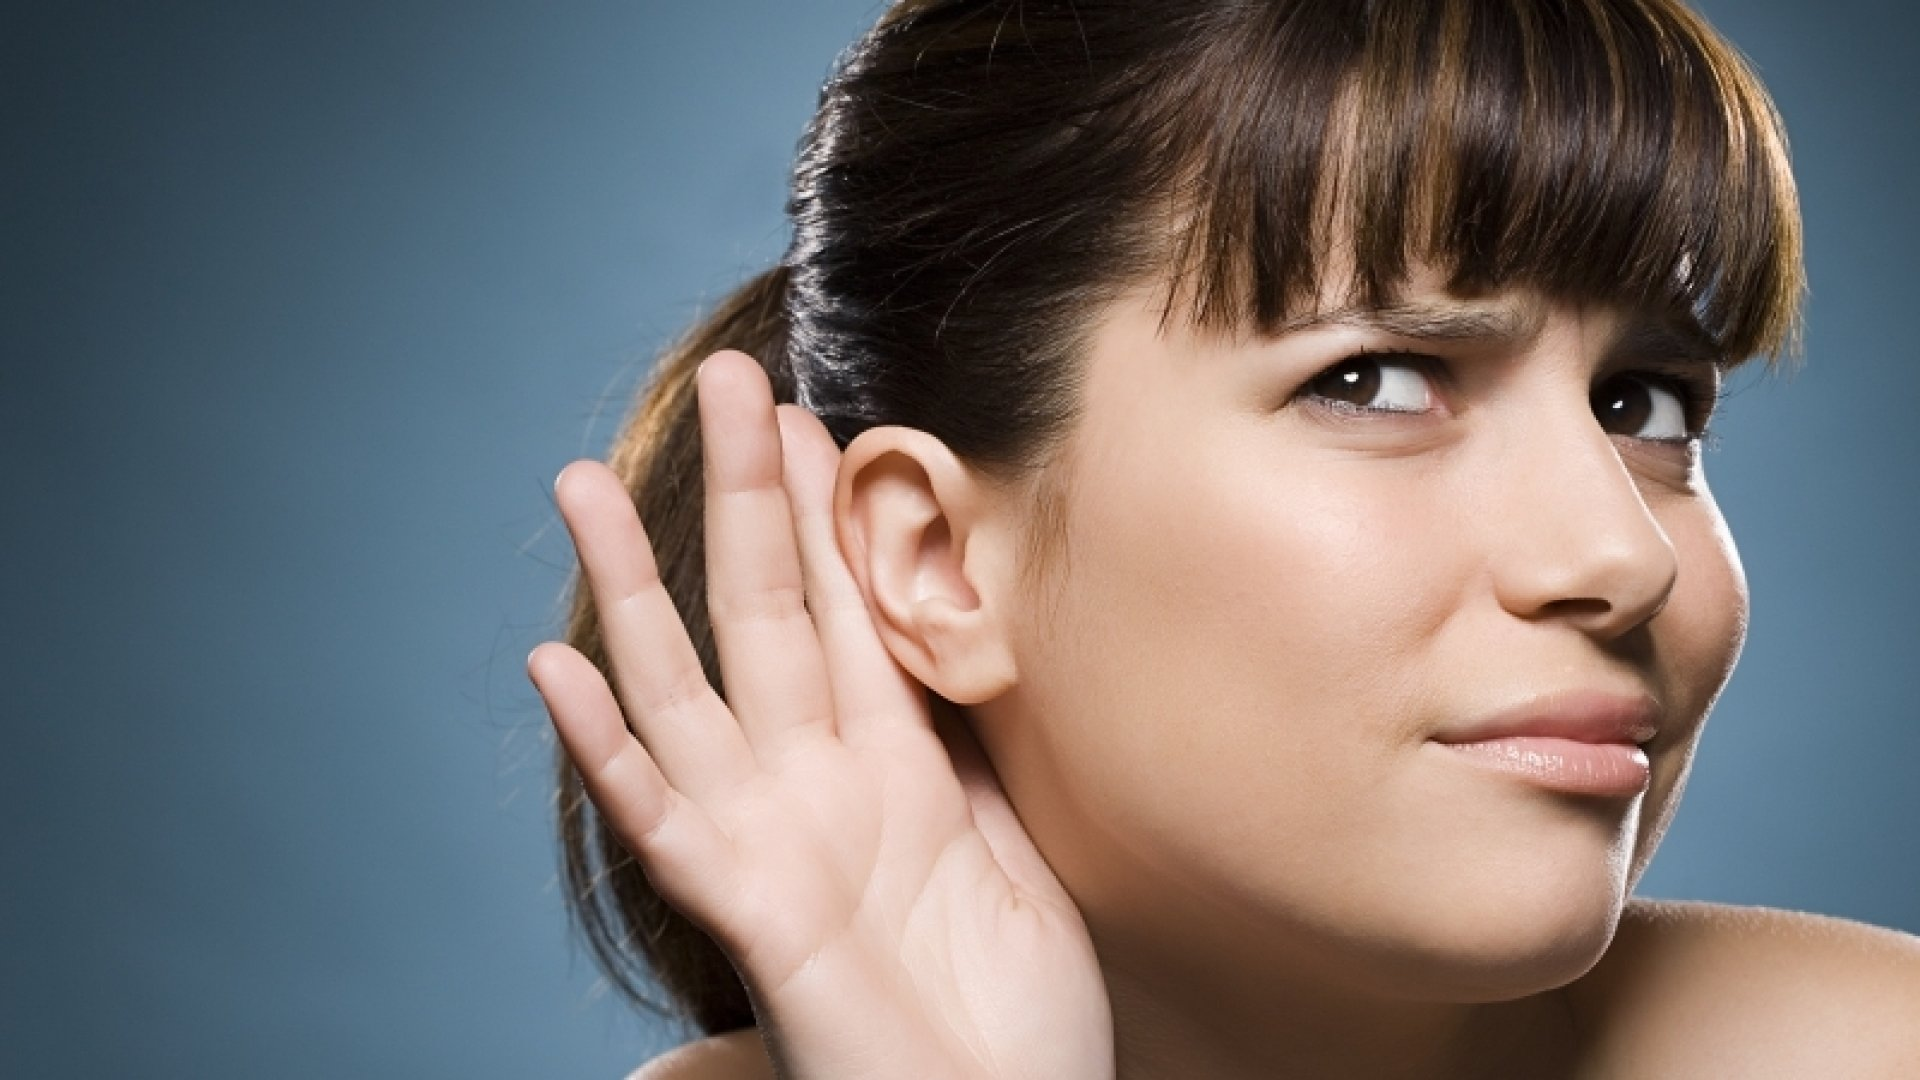 5 Ridiculously Easy Listening Techniques That Actually Work